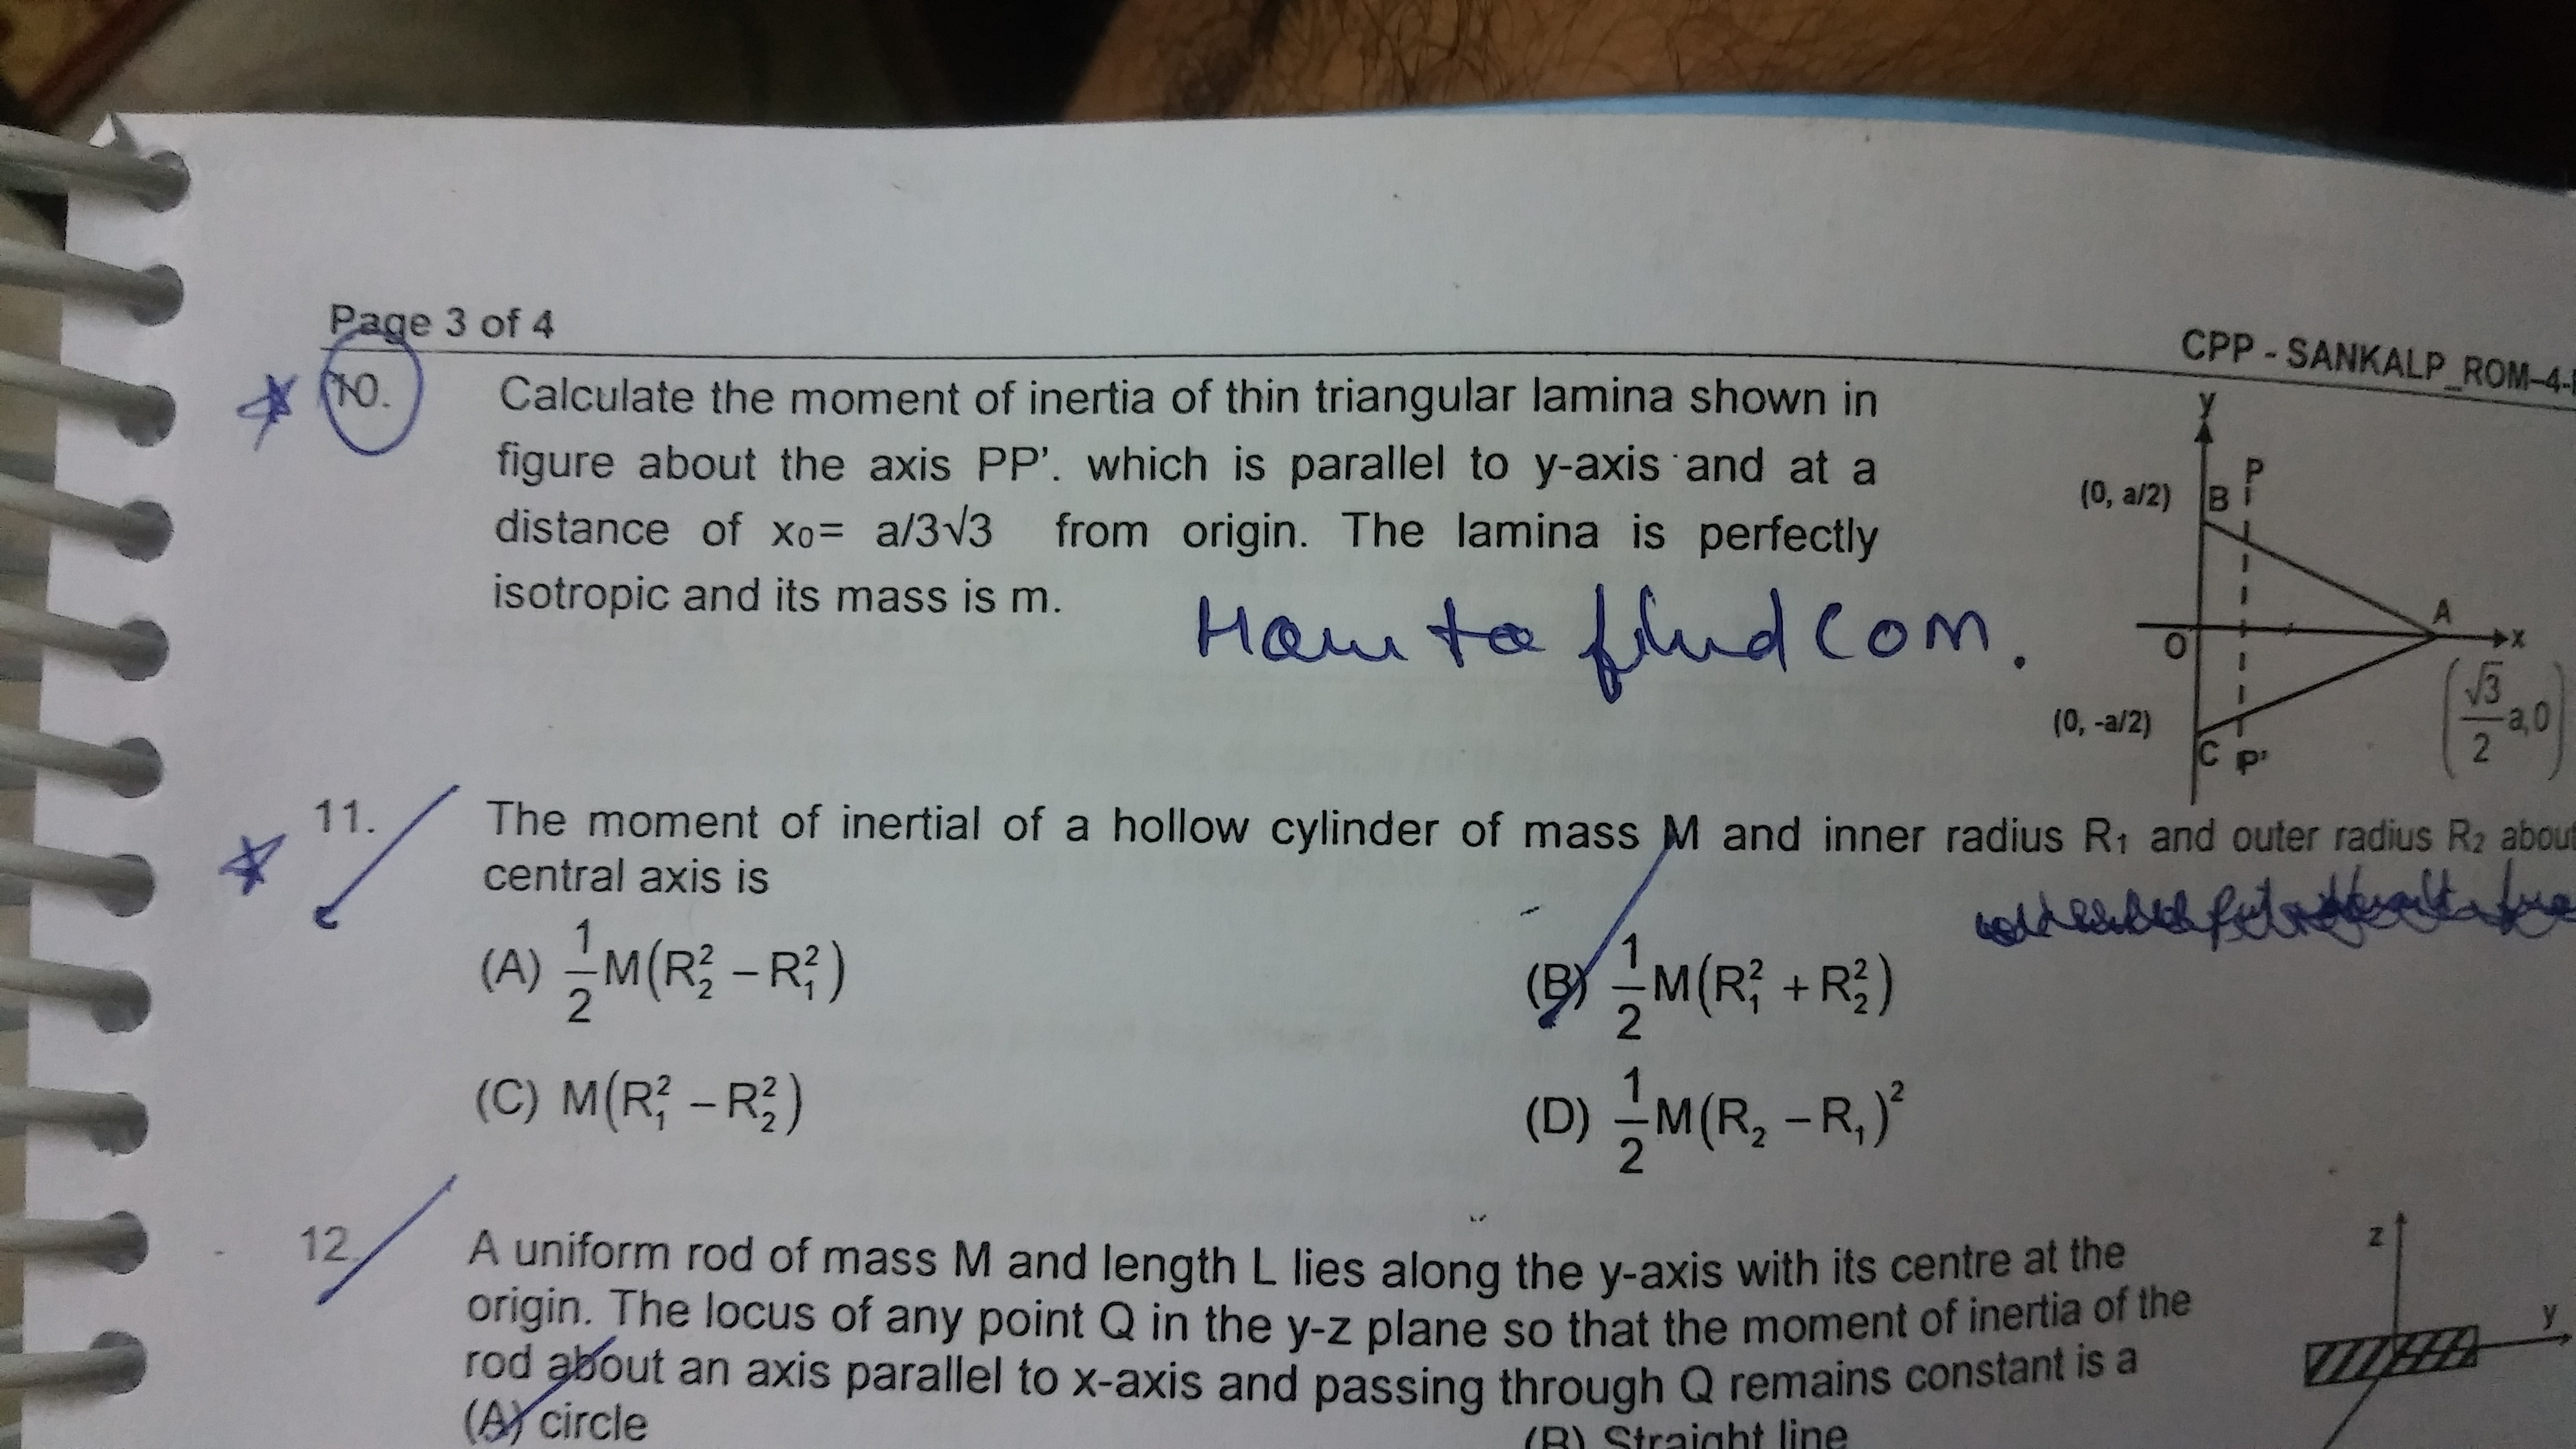 The Moment Of Inertia Of A Hollow Sphere Of Mass M Having Internal And External Radii R And 2r